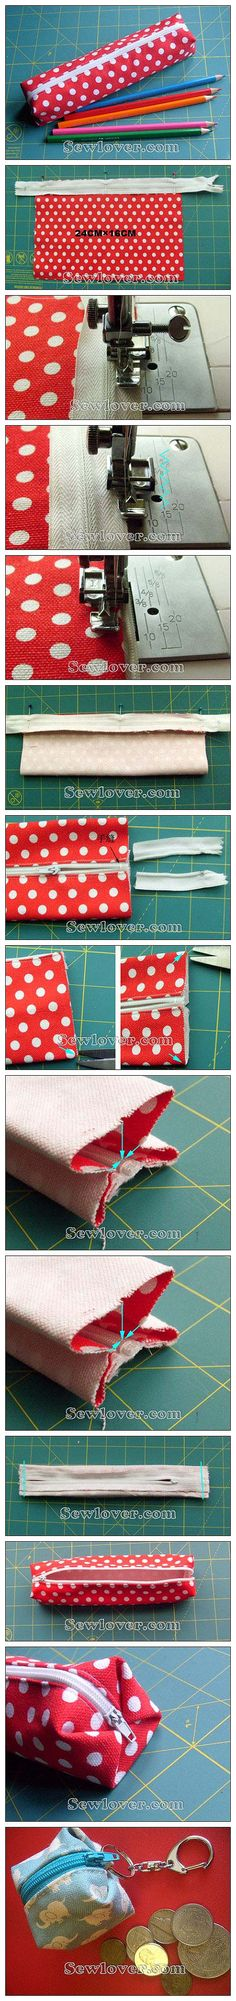 DIY pencil bag or cube coin bag with zipper! | DiyReal.com